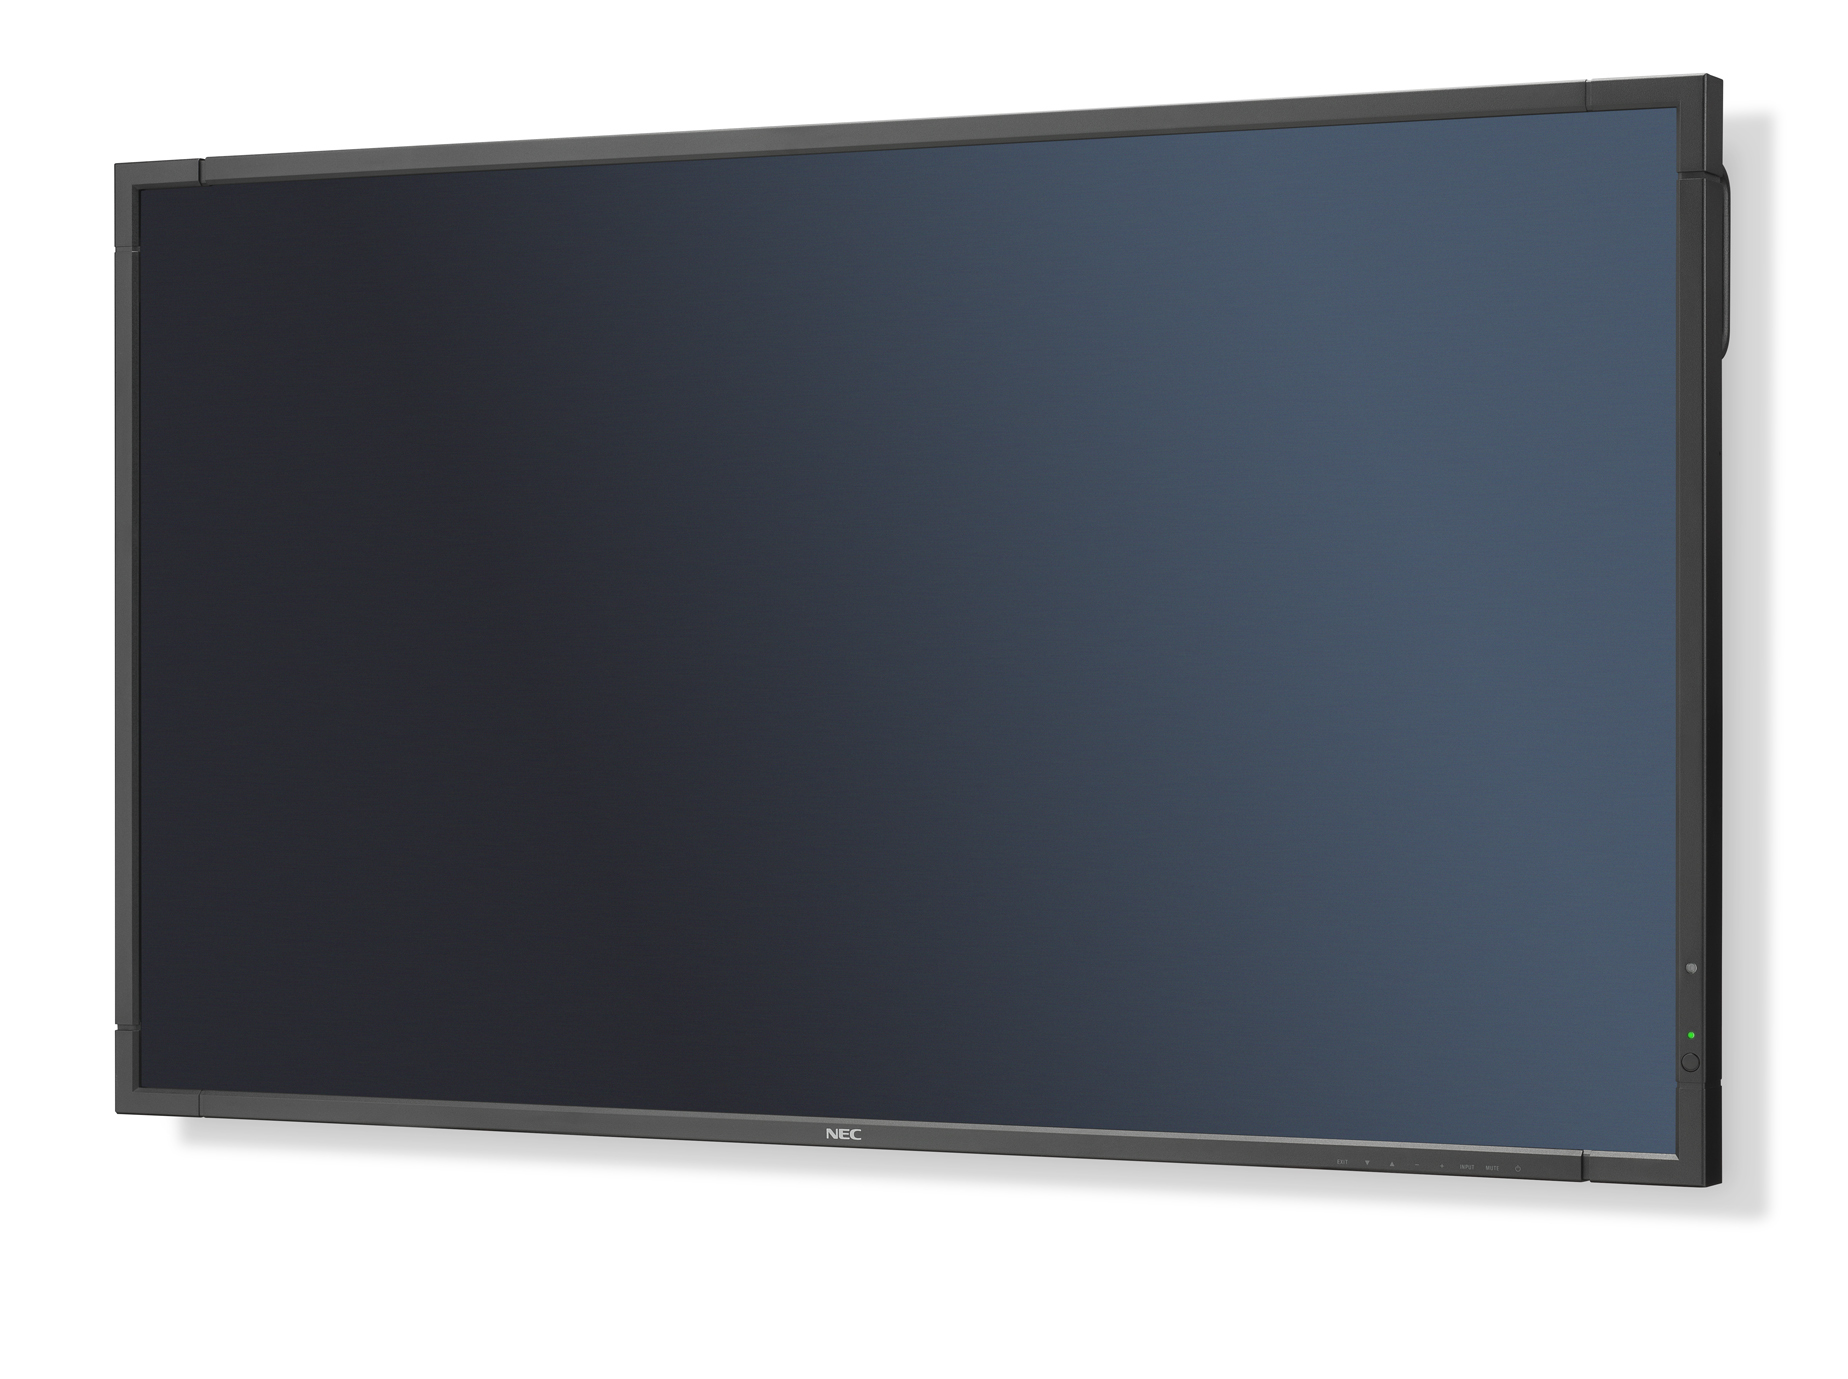 NEC 60003928 MULTISYNC E705 DIGITAL SIGNAGE FLAT PANEL 70